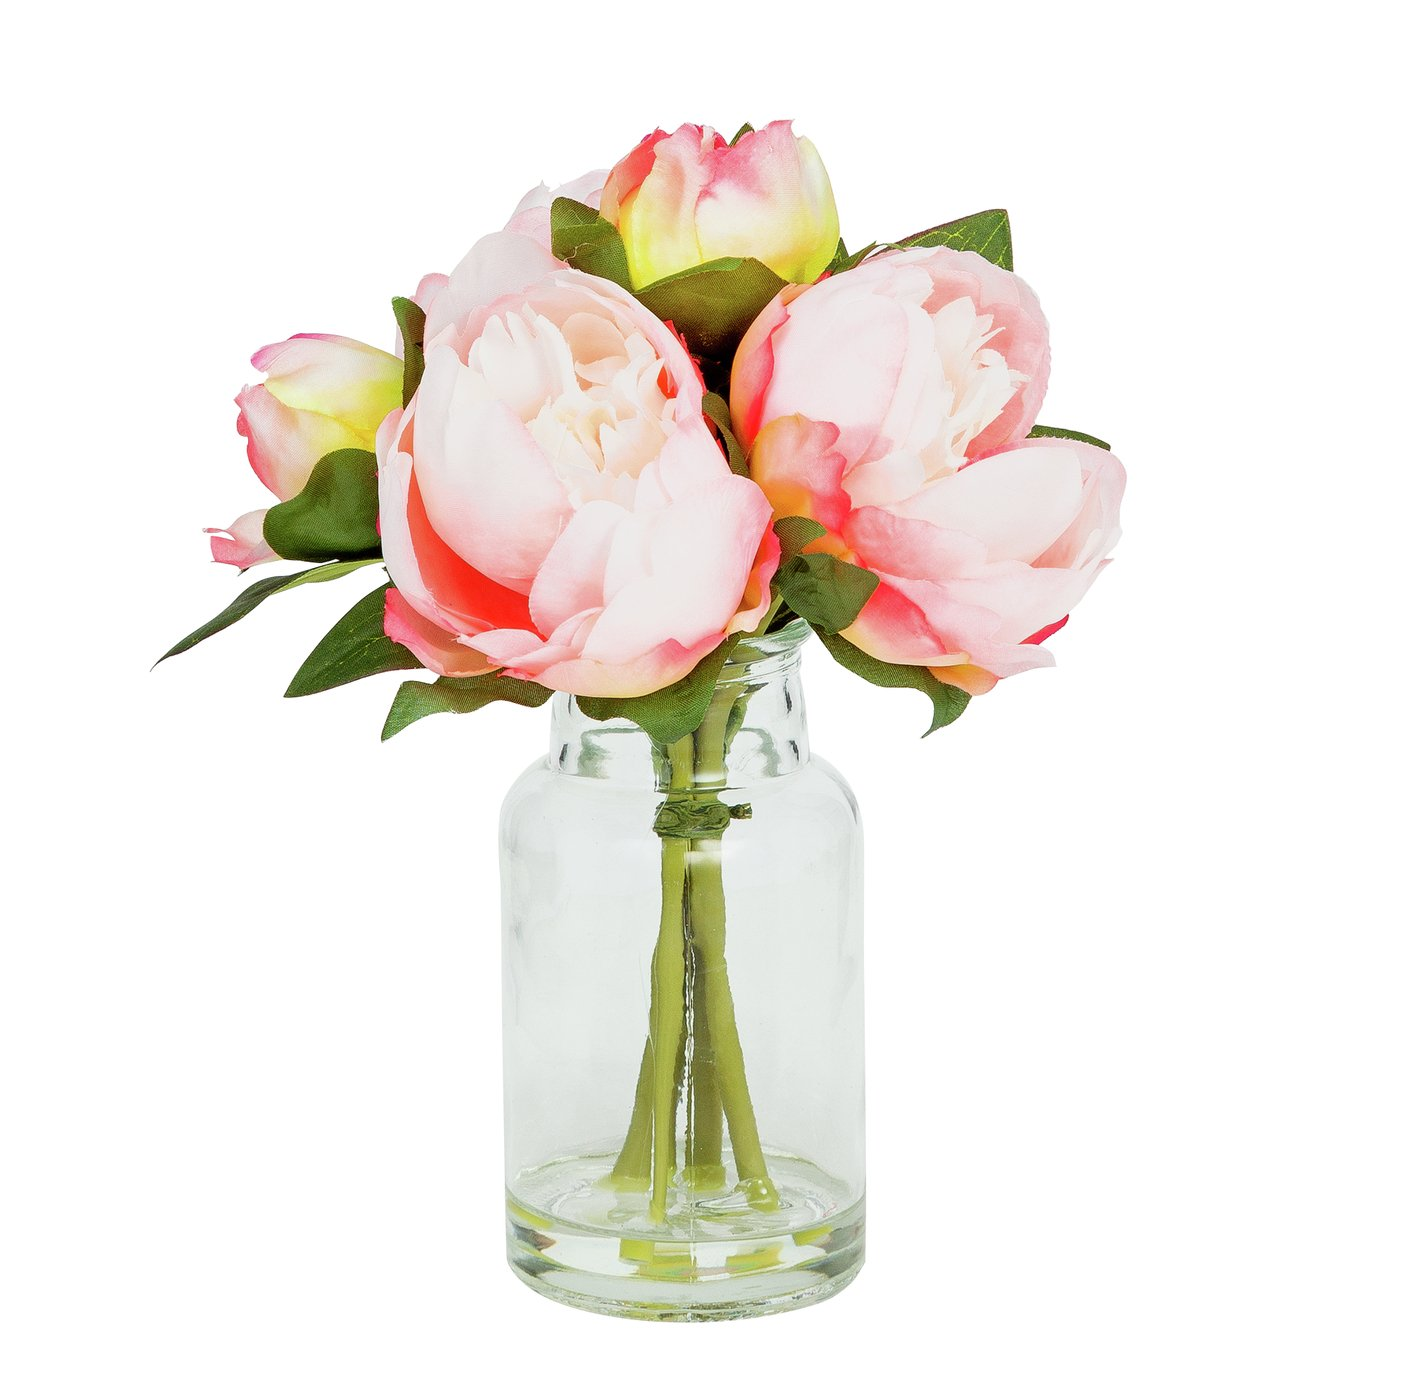 Image of Pink Peony Artificial Flower Arrangement